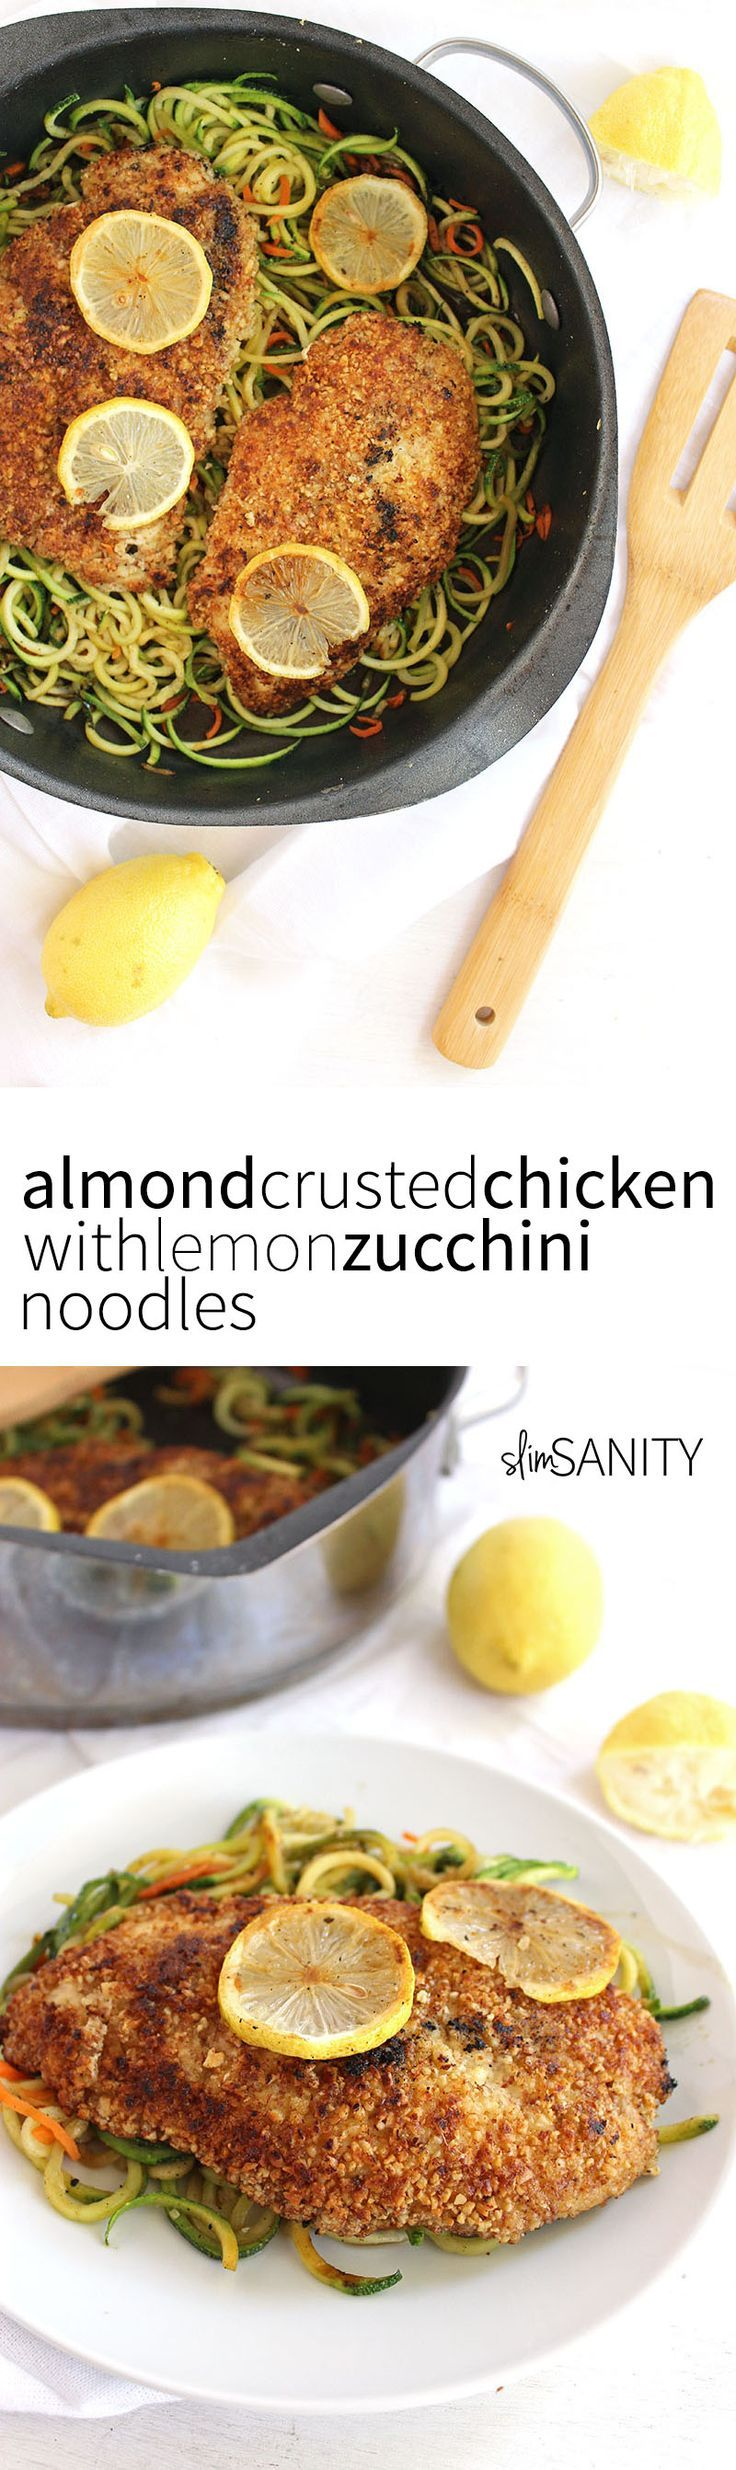 Almond Crusted Chicken with Lemon Zucchini Noodles